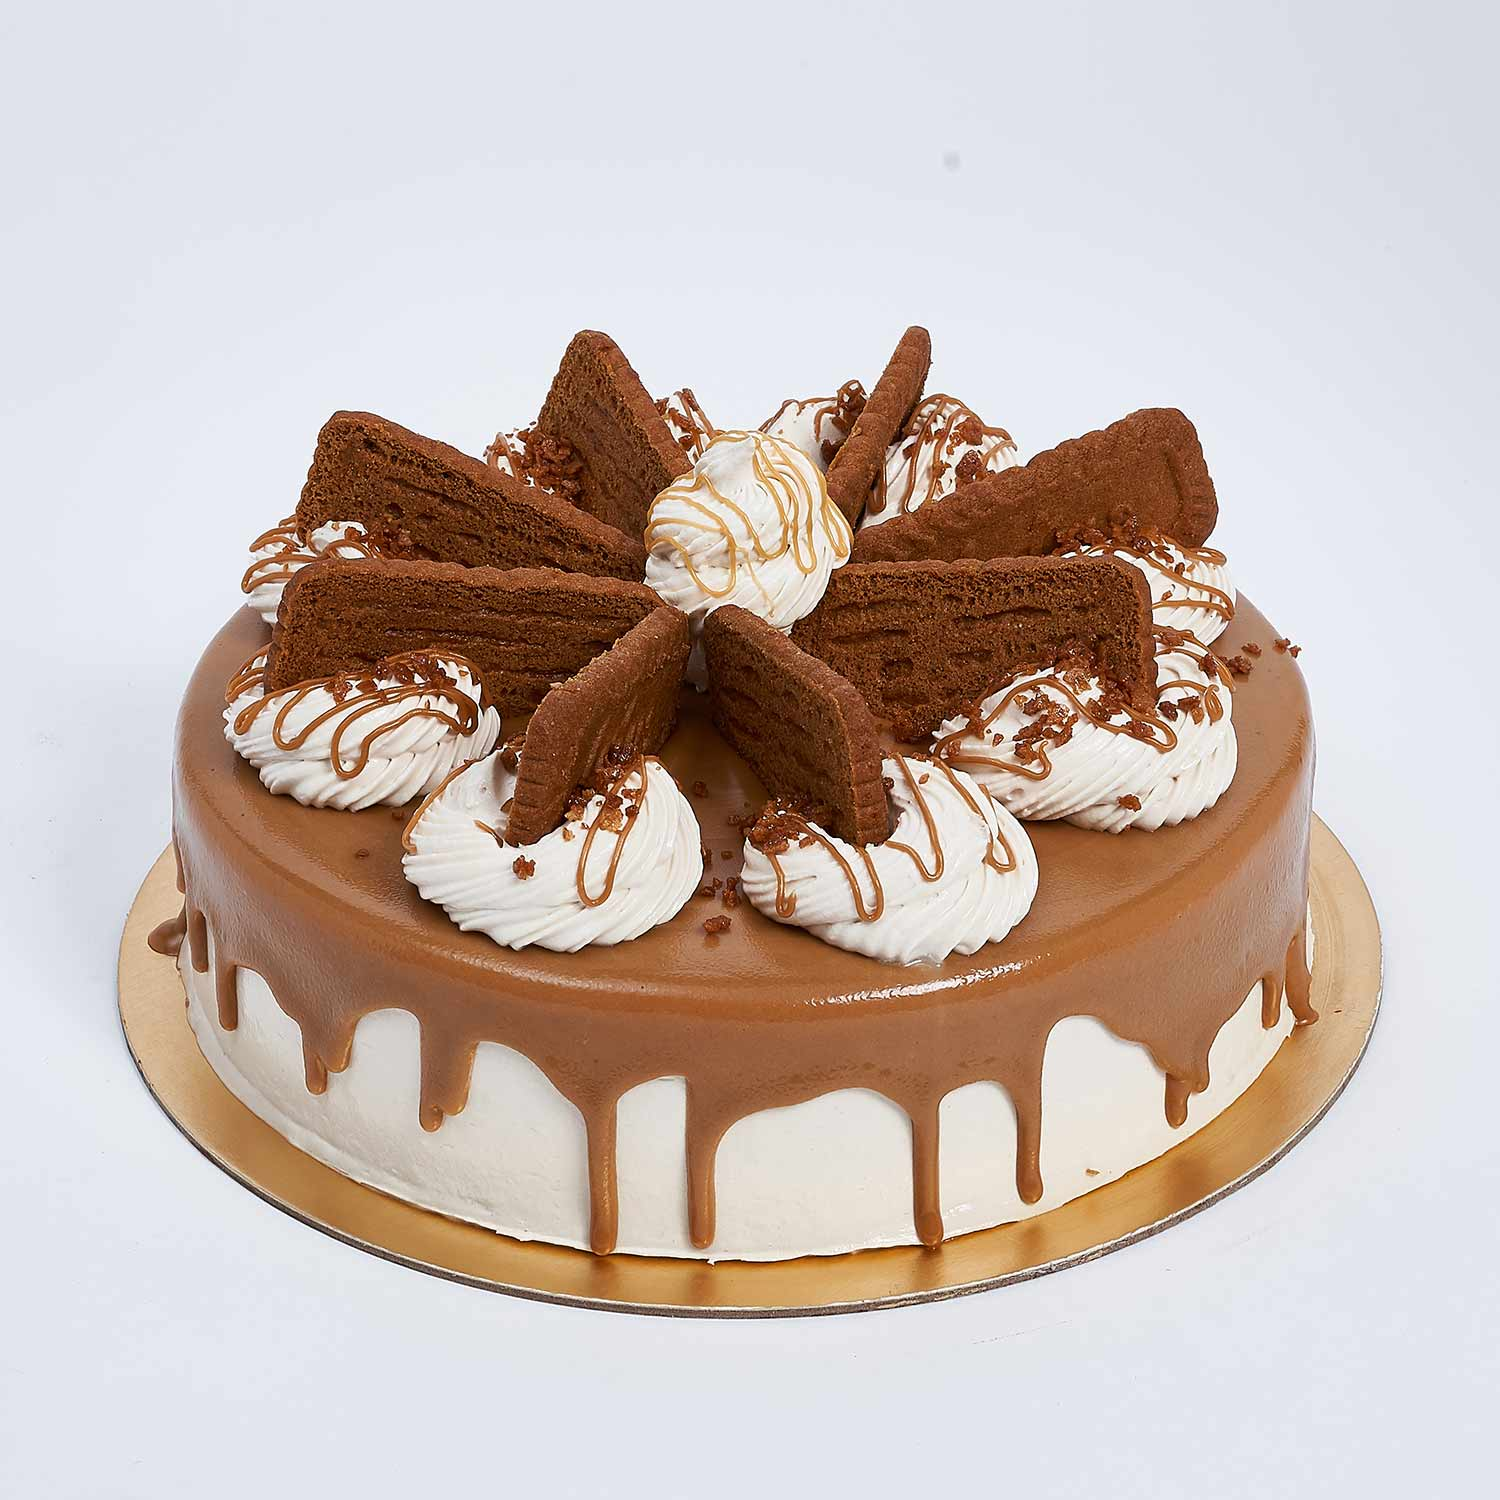 Heavenly Lotus Biscoff Cake: Cake Delivery in Dubai